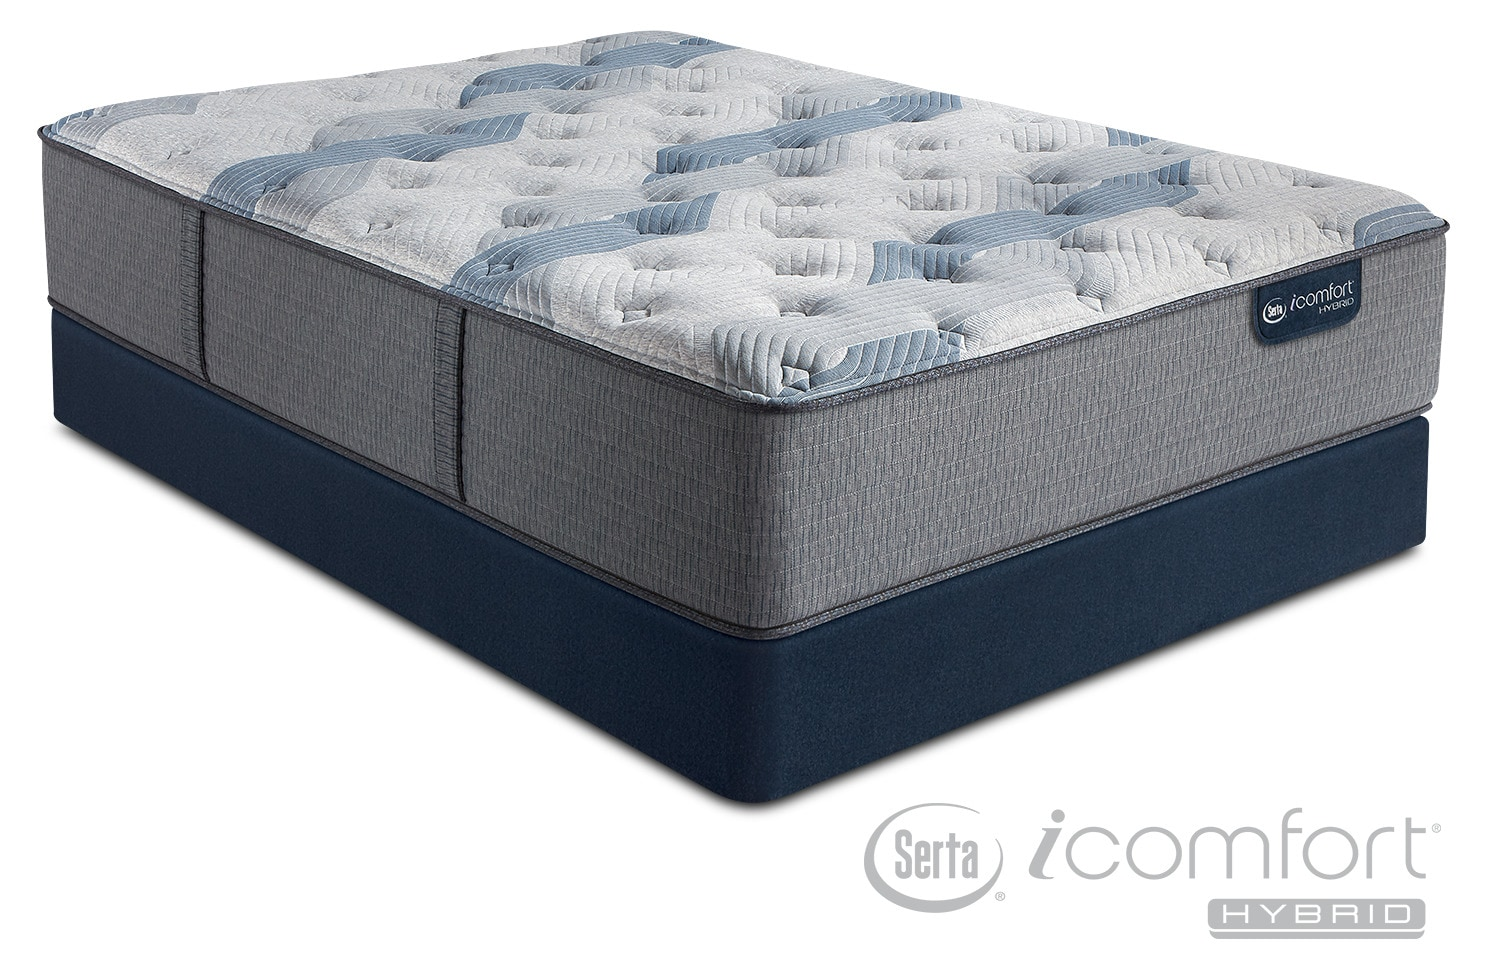 blue fusion 200 plush california king mattress and split foundation set american signature. Black Bedroom Furniture Sets. Home Design Ideas